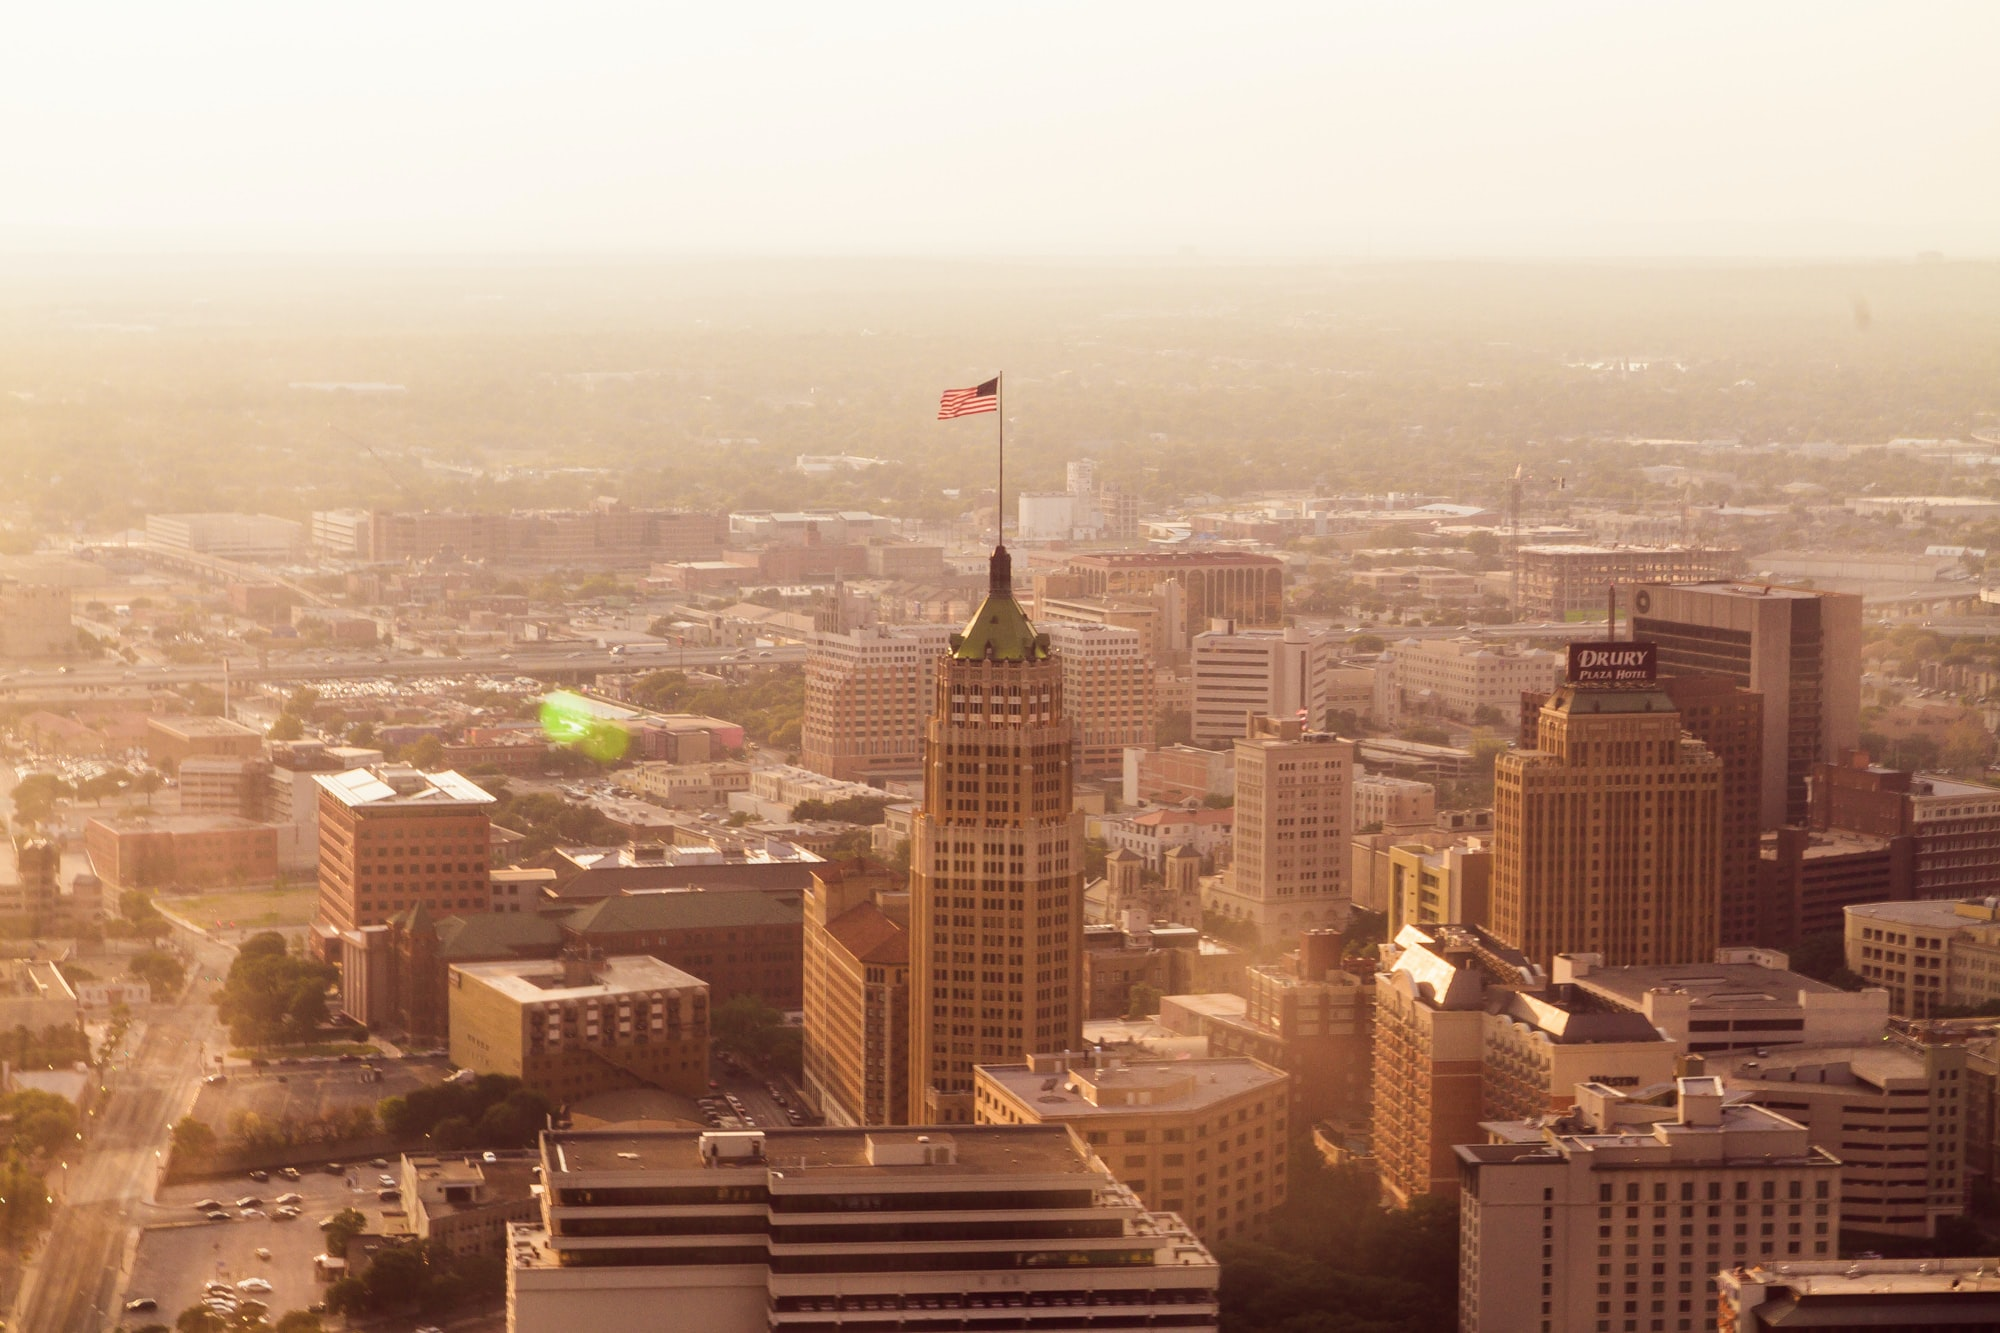 The San Antonio cityscape with the Tower Life Building and the Drury Plaza Hotel.